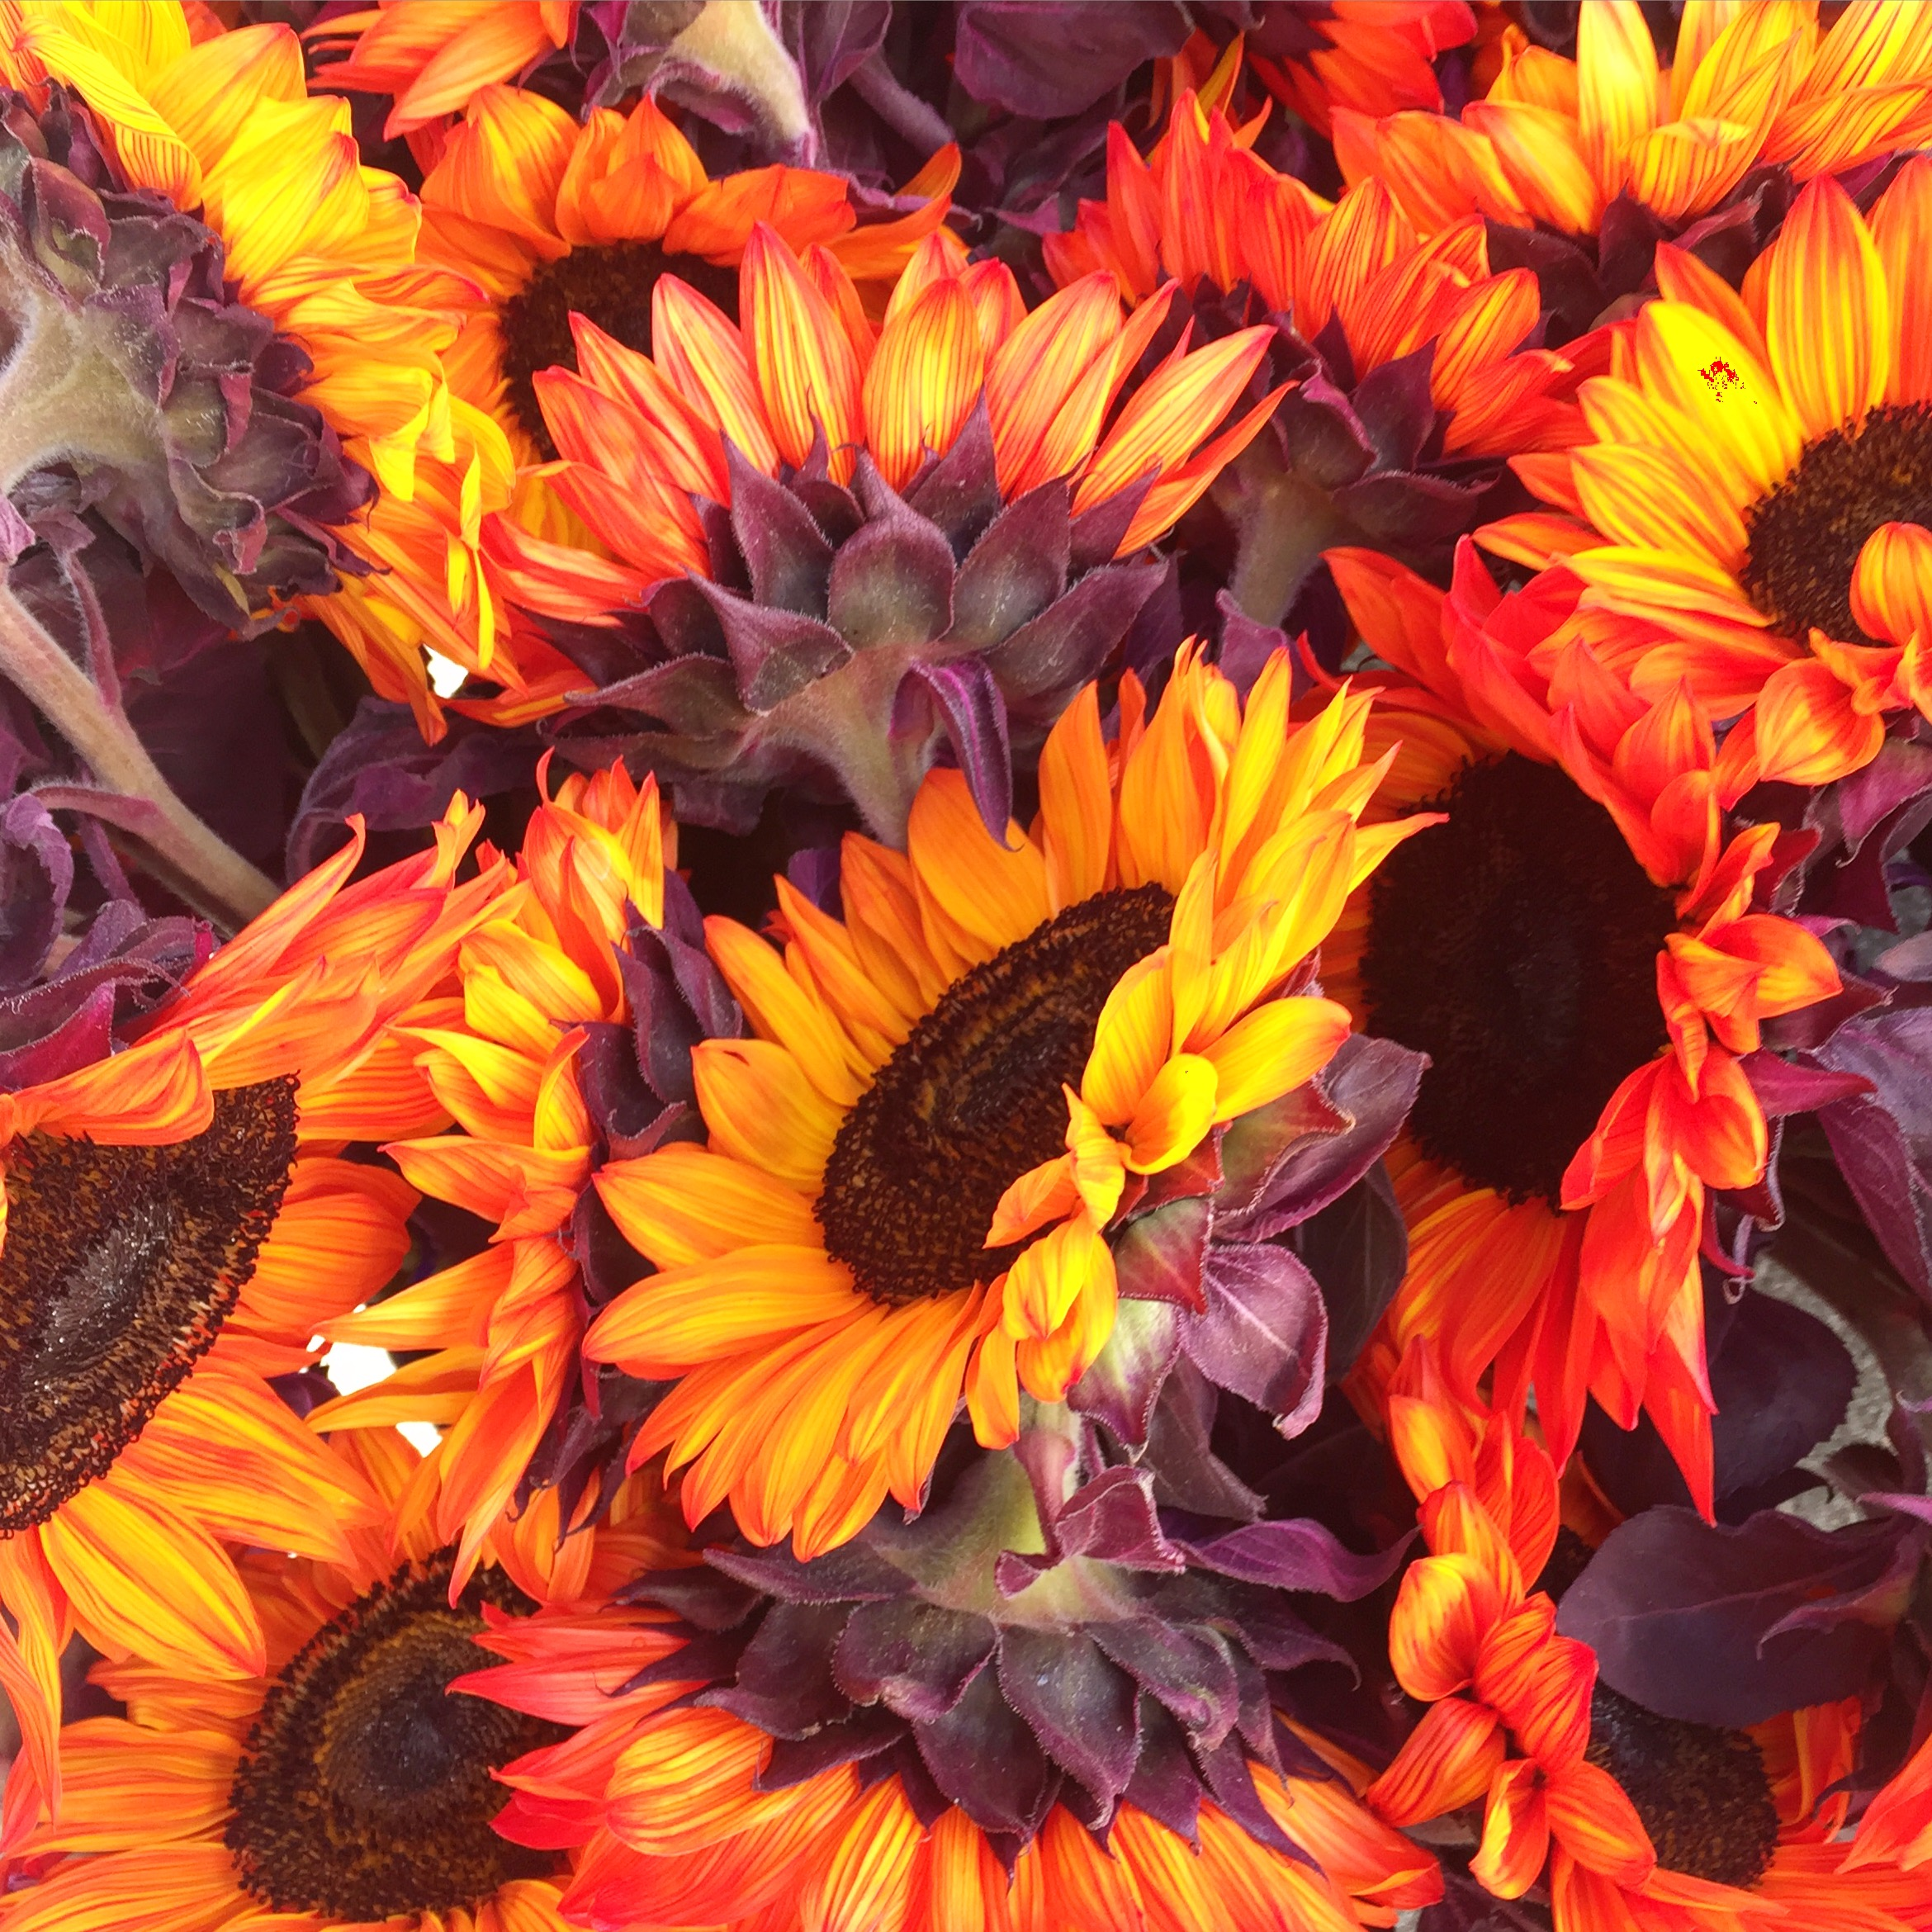 Fall colored sunflowers